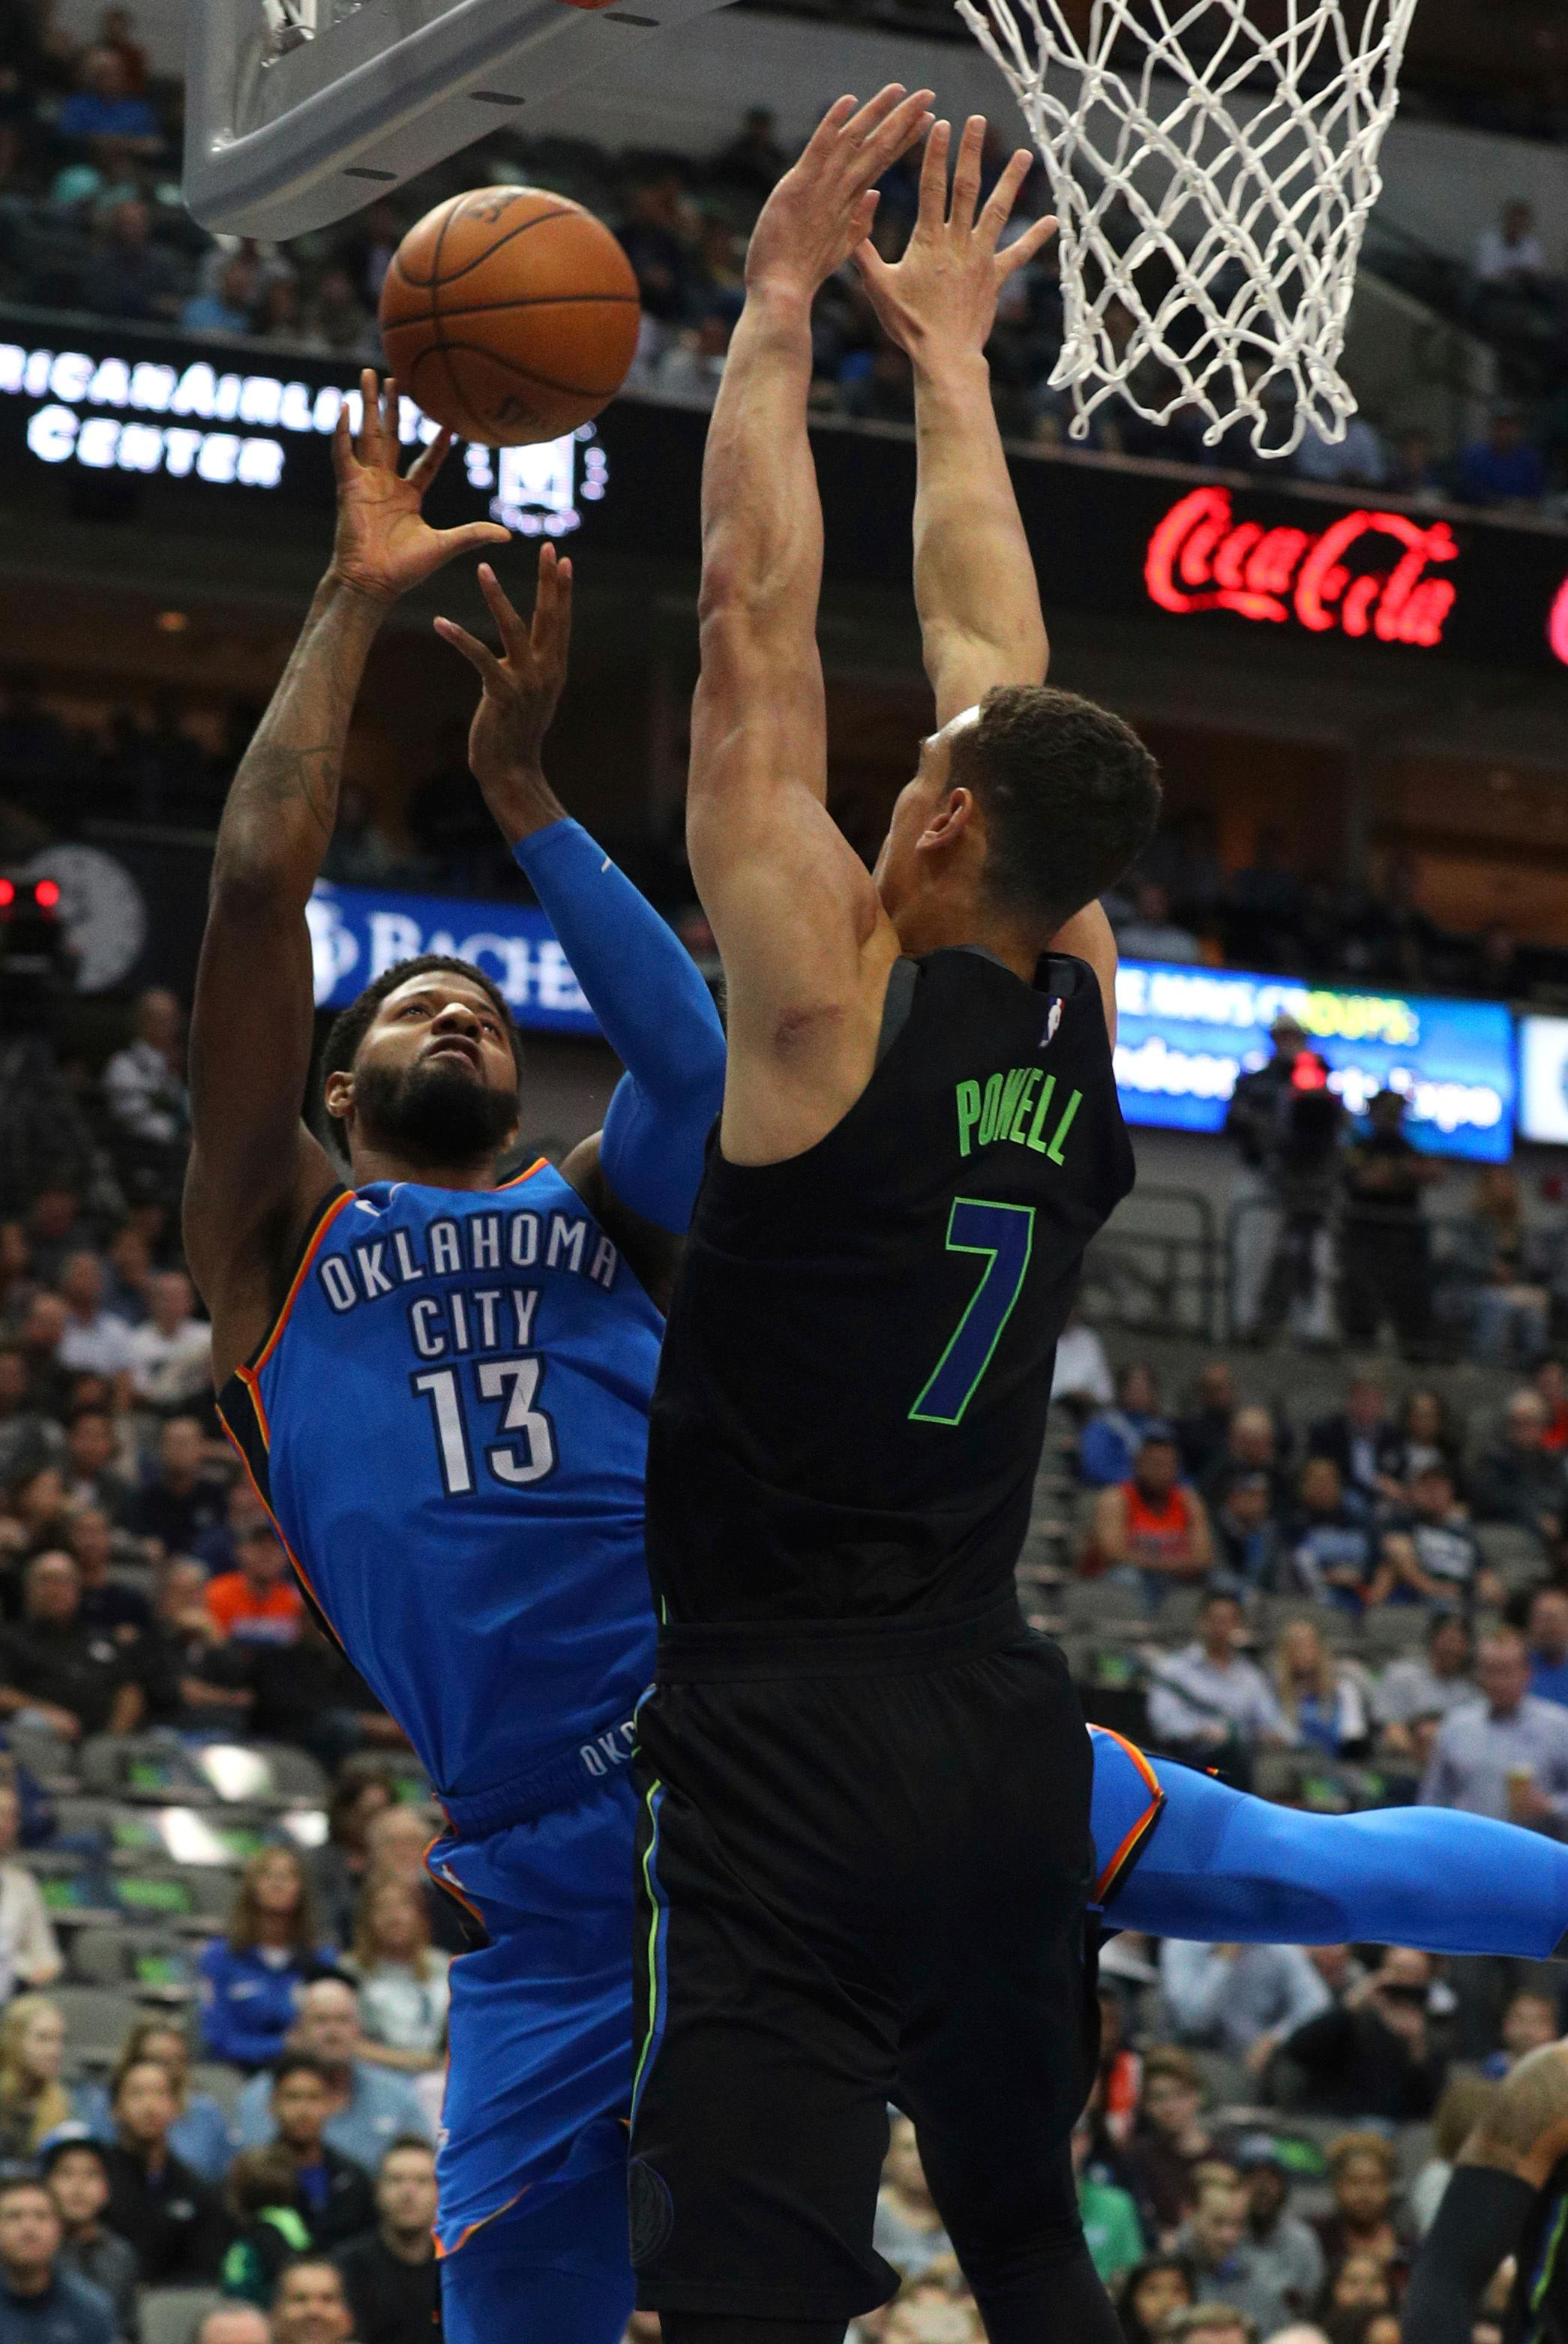 Oklahoma City Thunder forward Paul George (13) tries to put up a shot against Dallas Mavericks forward Dwight Powell (7) during the first half of an NBA basketball game Wednesday, Feb. 28, 2018 in Dallas. (AP Photo/ Richard W. Rodriguez)